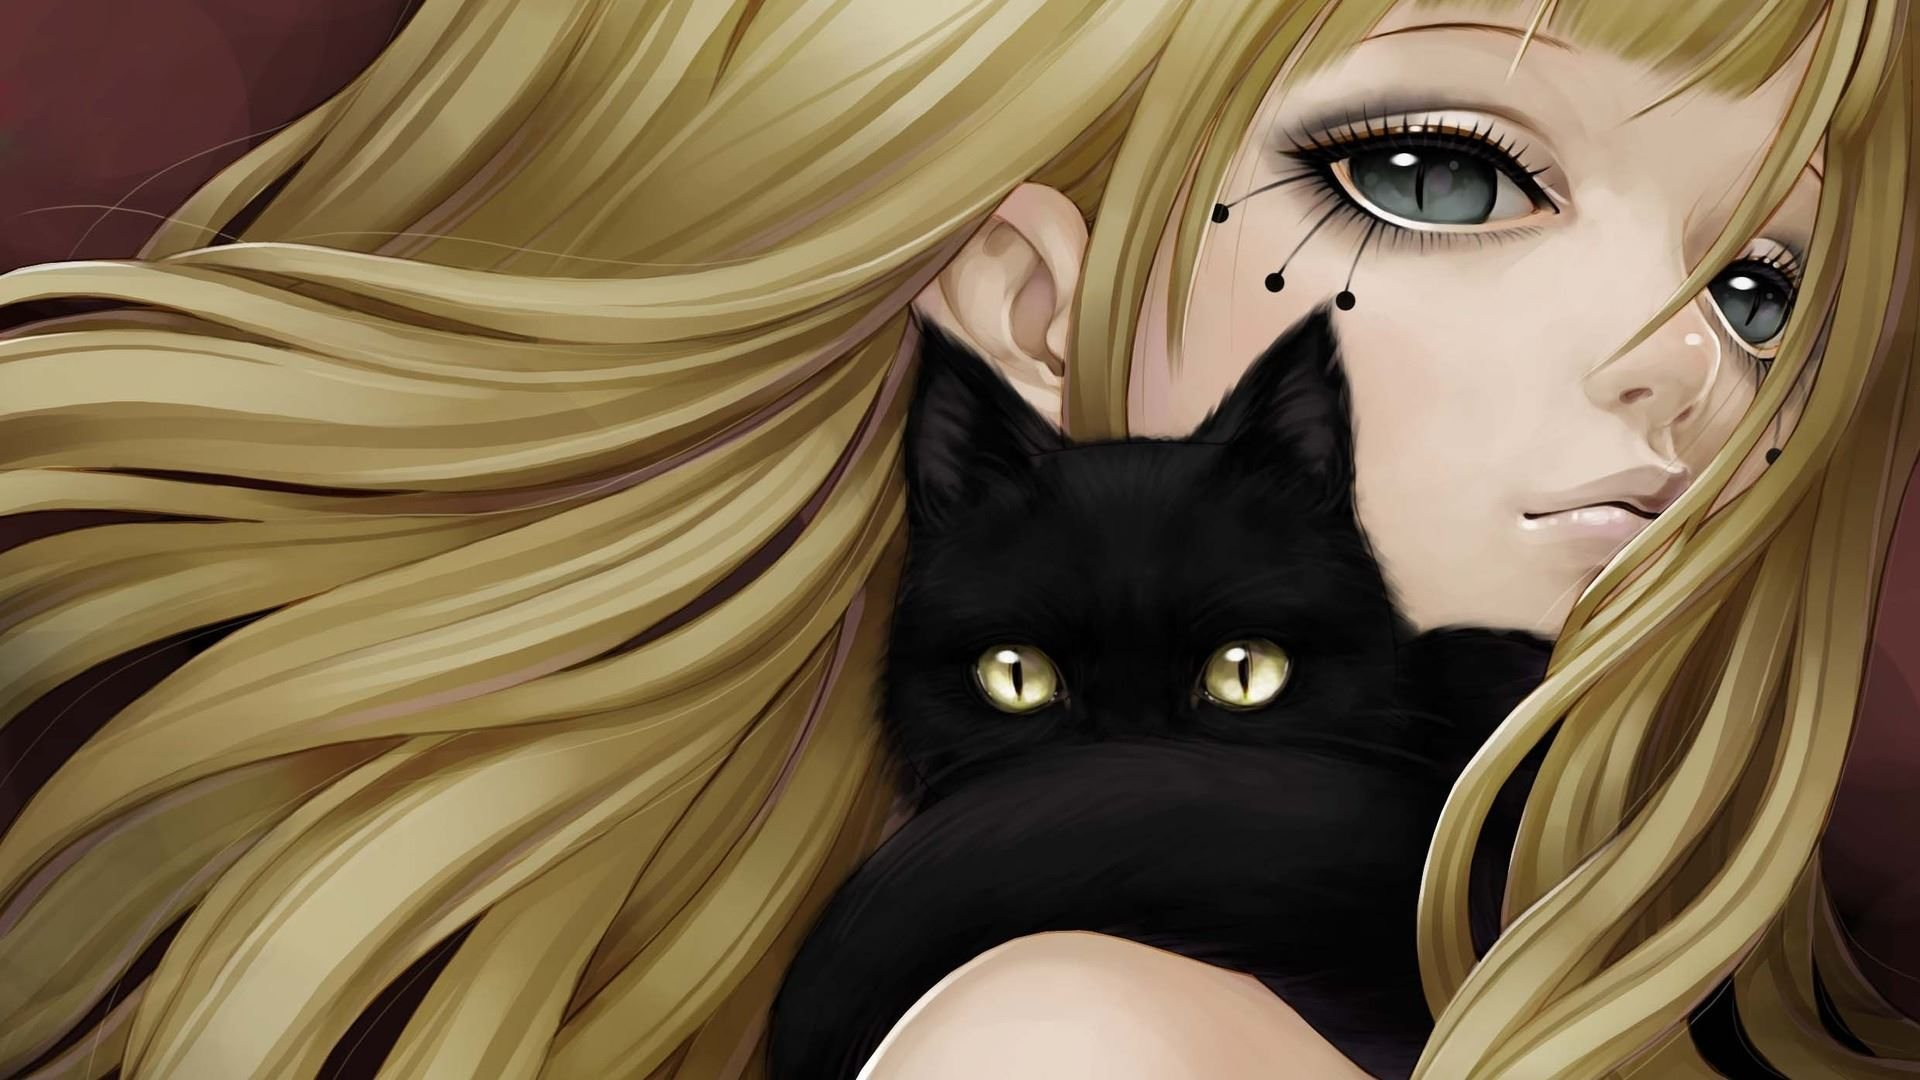 Anime girl and black cat high definition wallpapers hd - Anime cat wallpaper ...